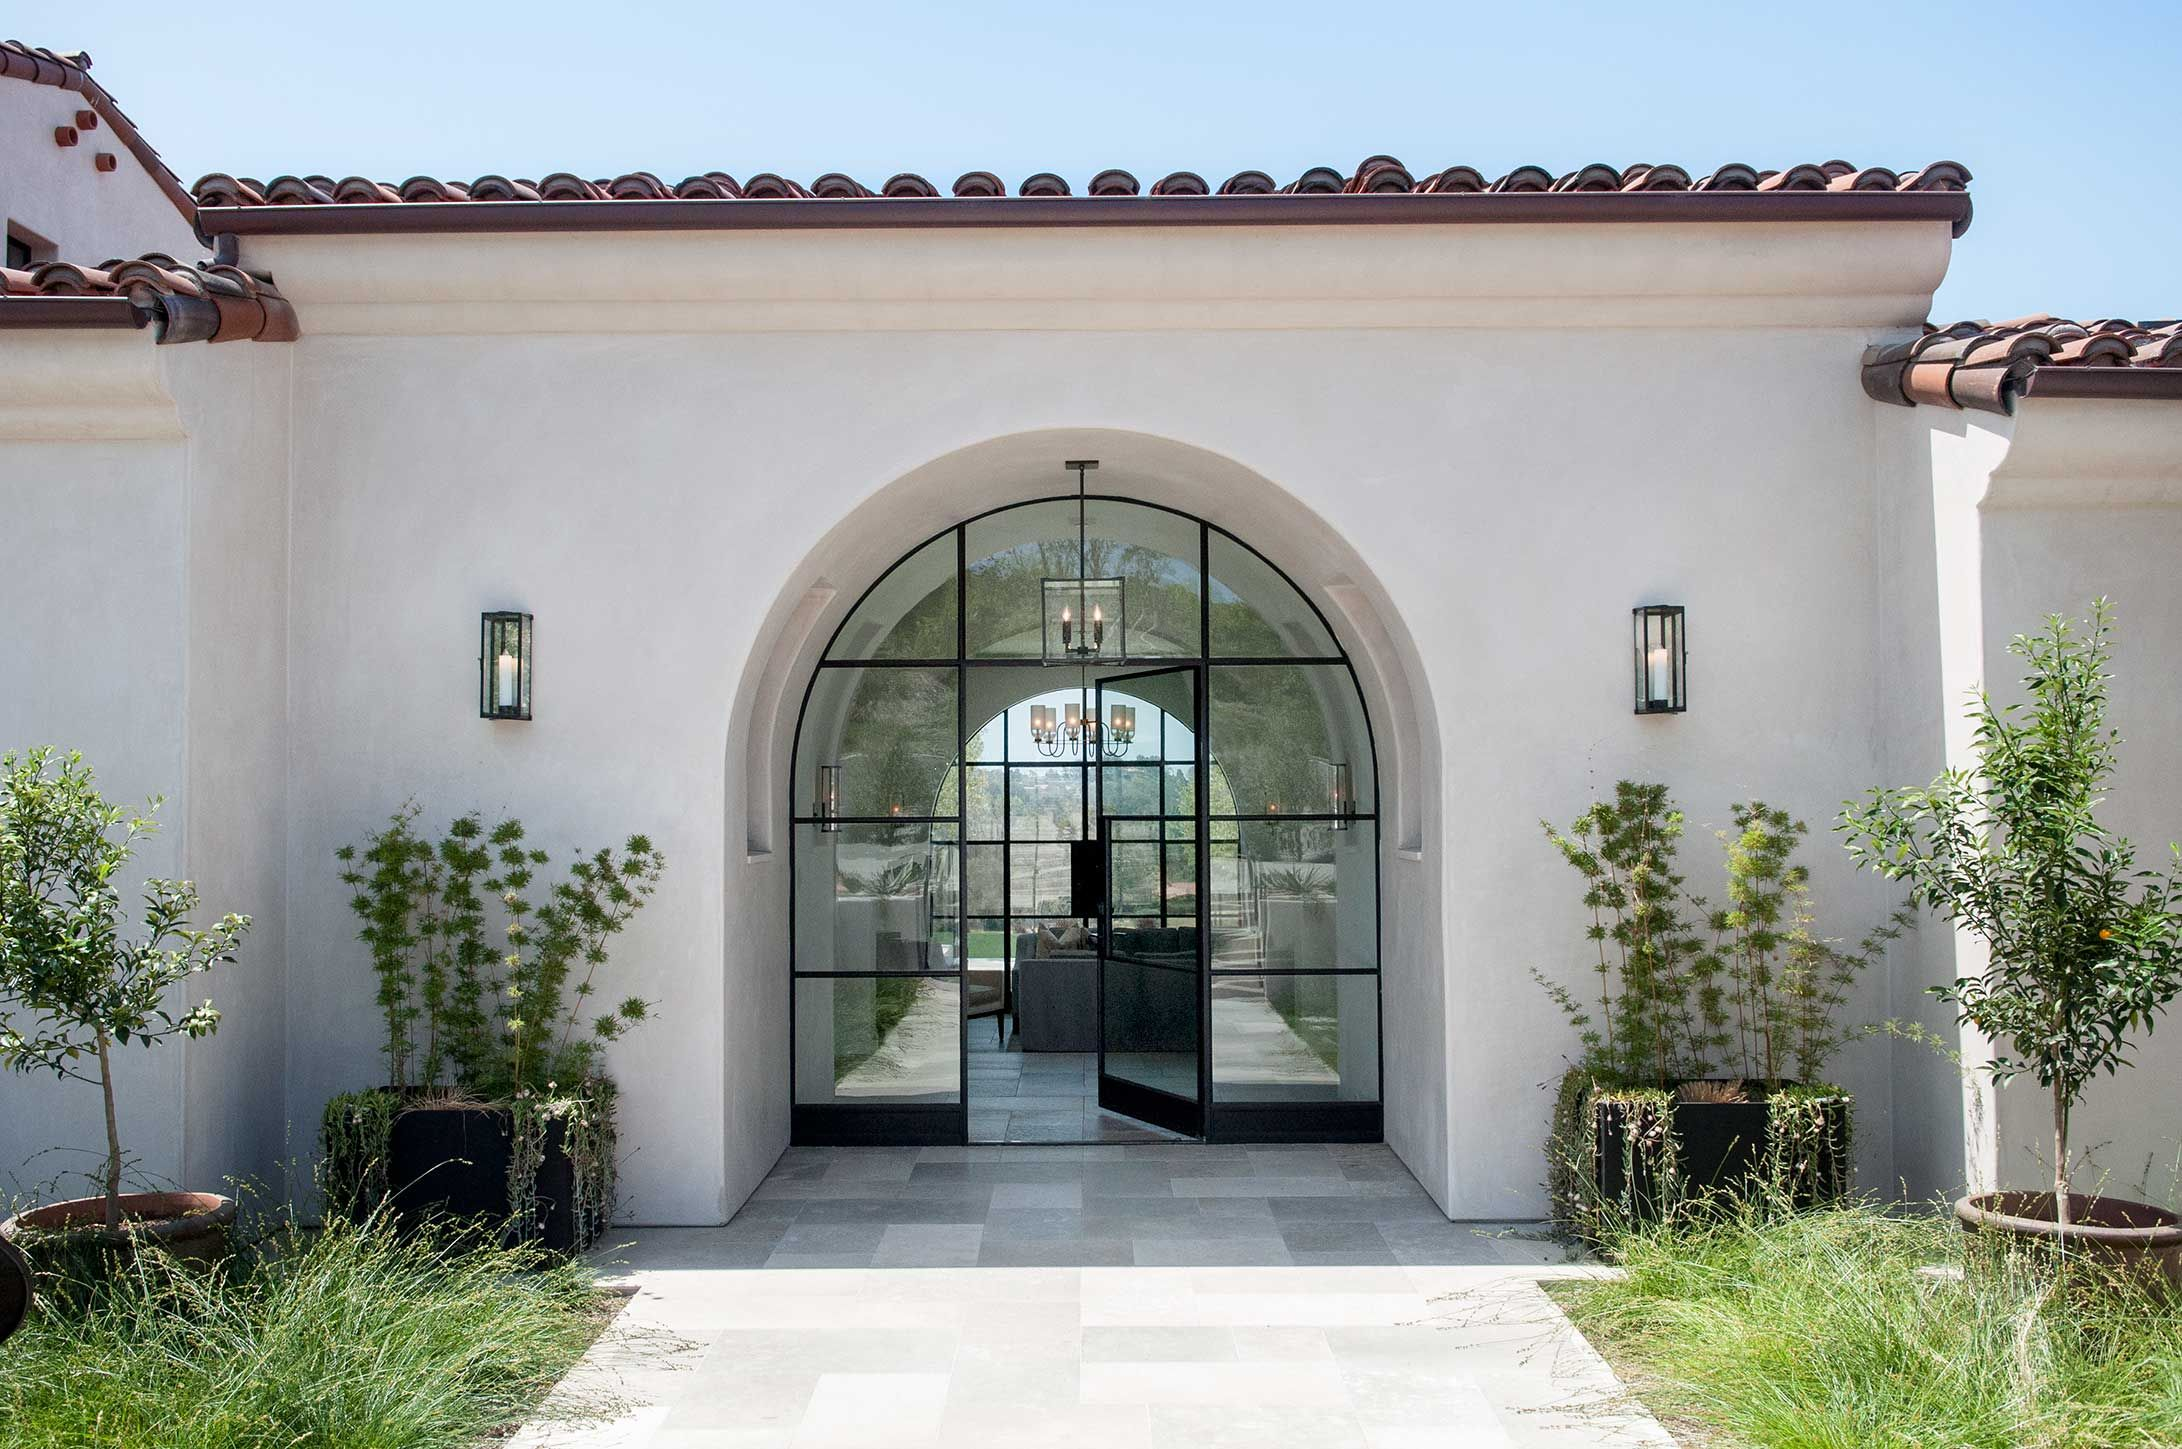 Gorgeous front door, architecture, landscaping | Spanish ...